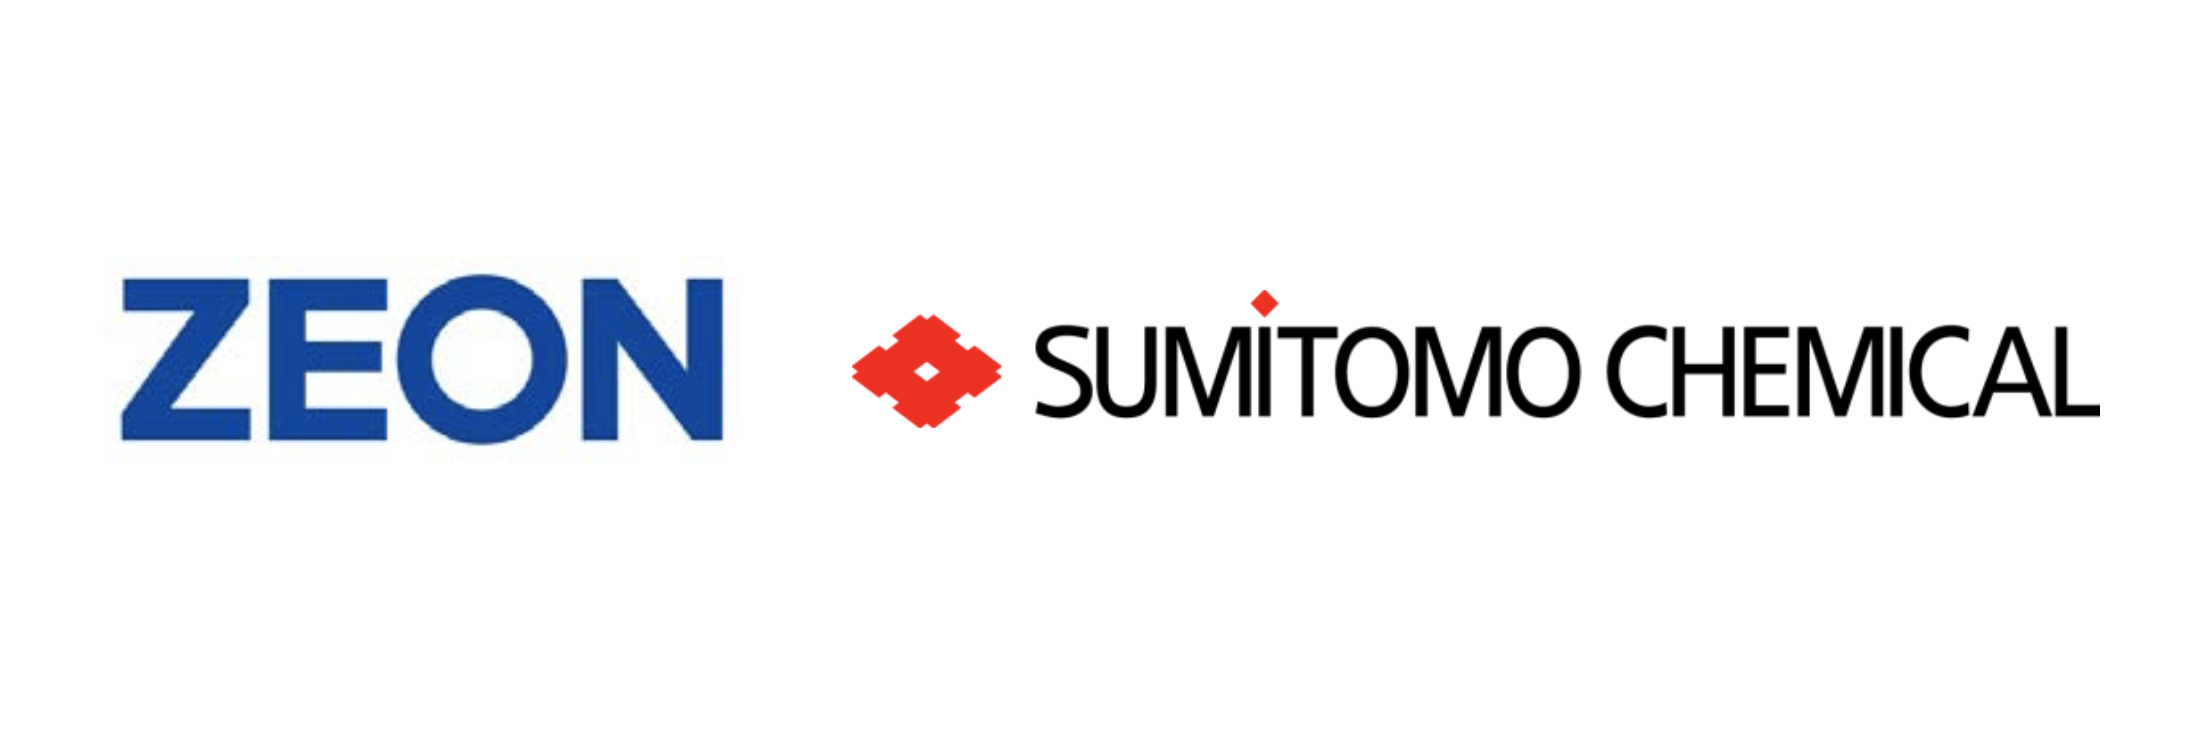 Zeon and Sumitomo starting SBR business together - Industrial Valve News